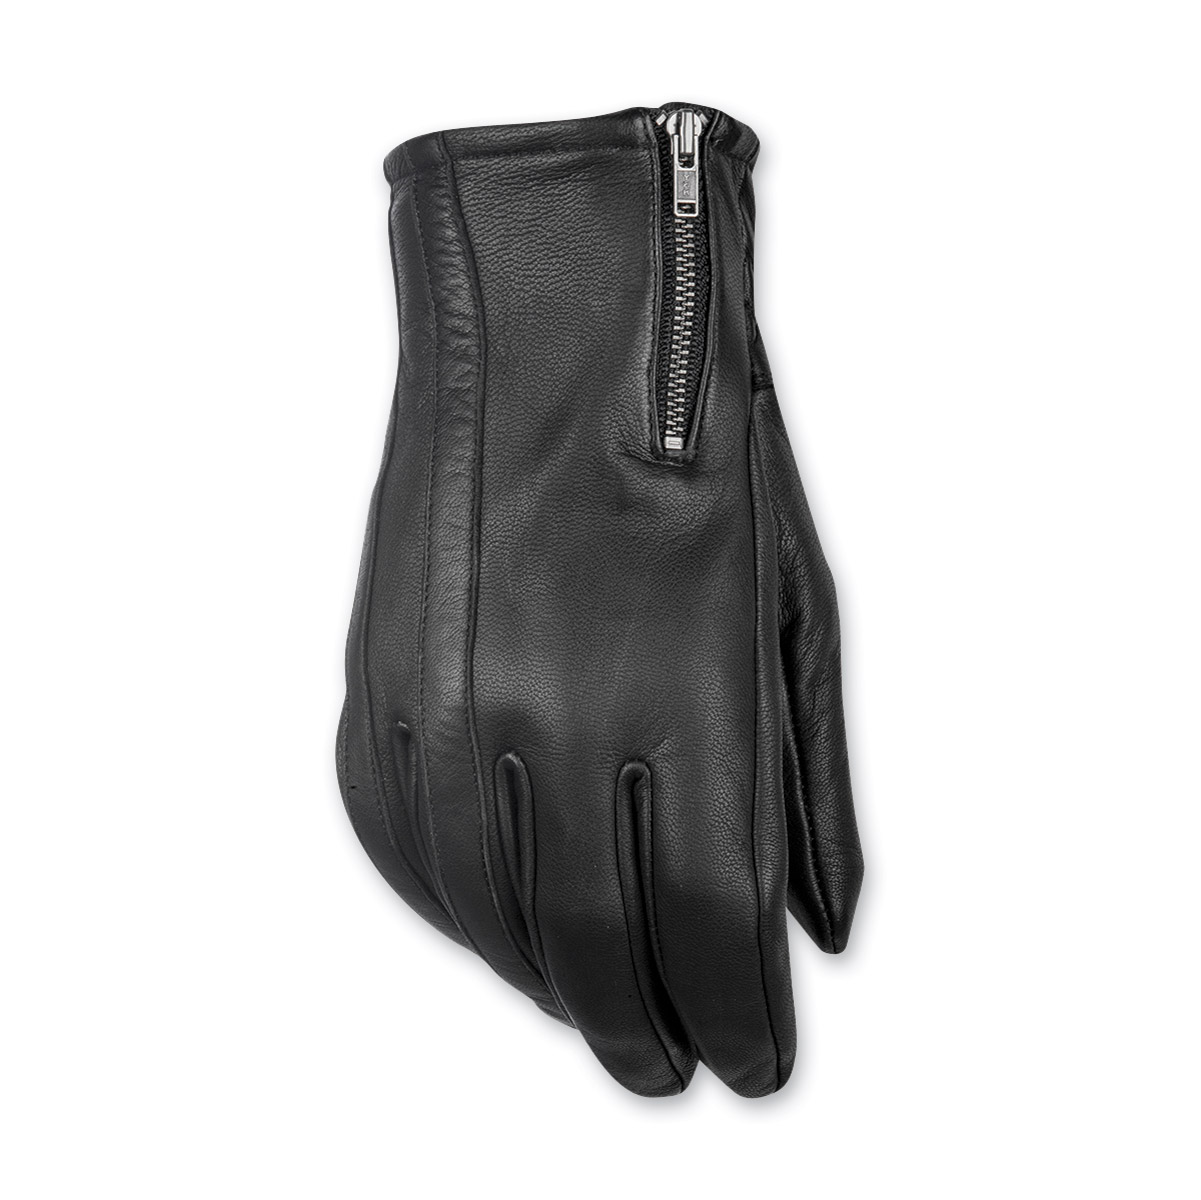 Highway 21 Men's Recoil Black Leather Gloves